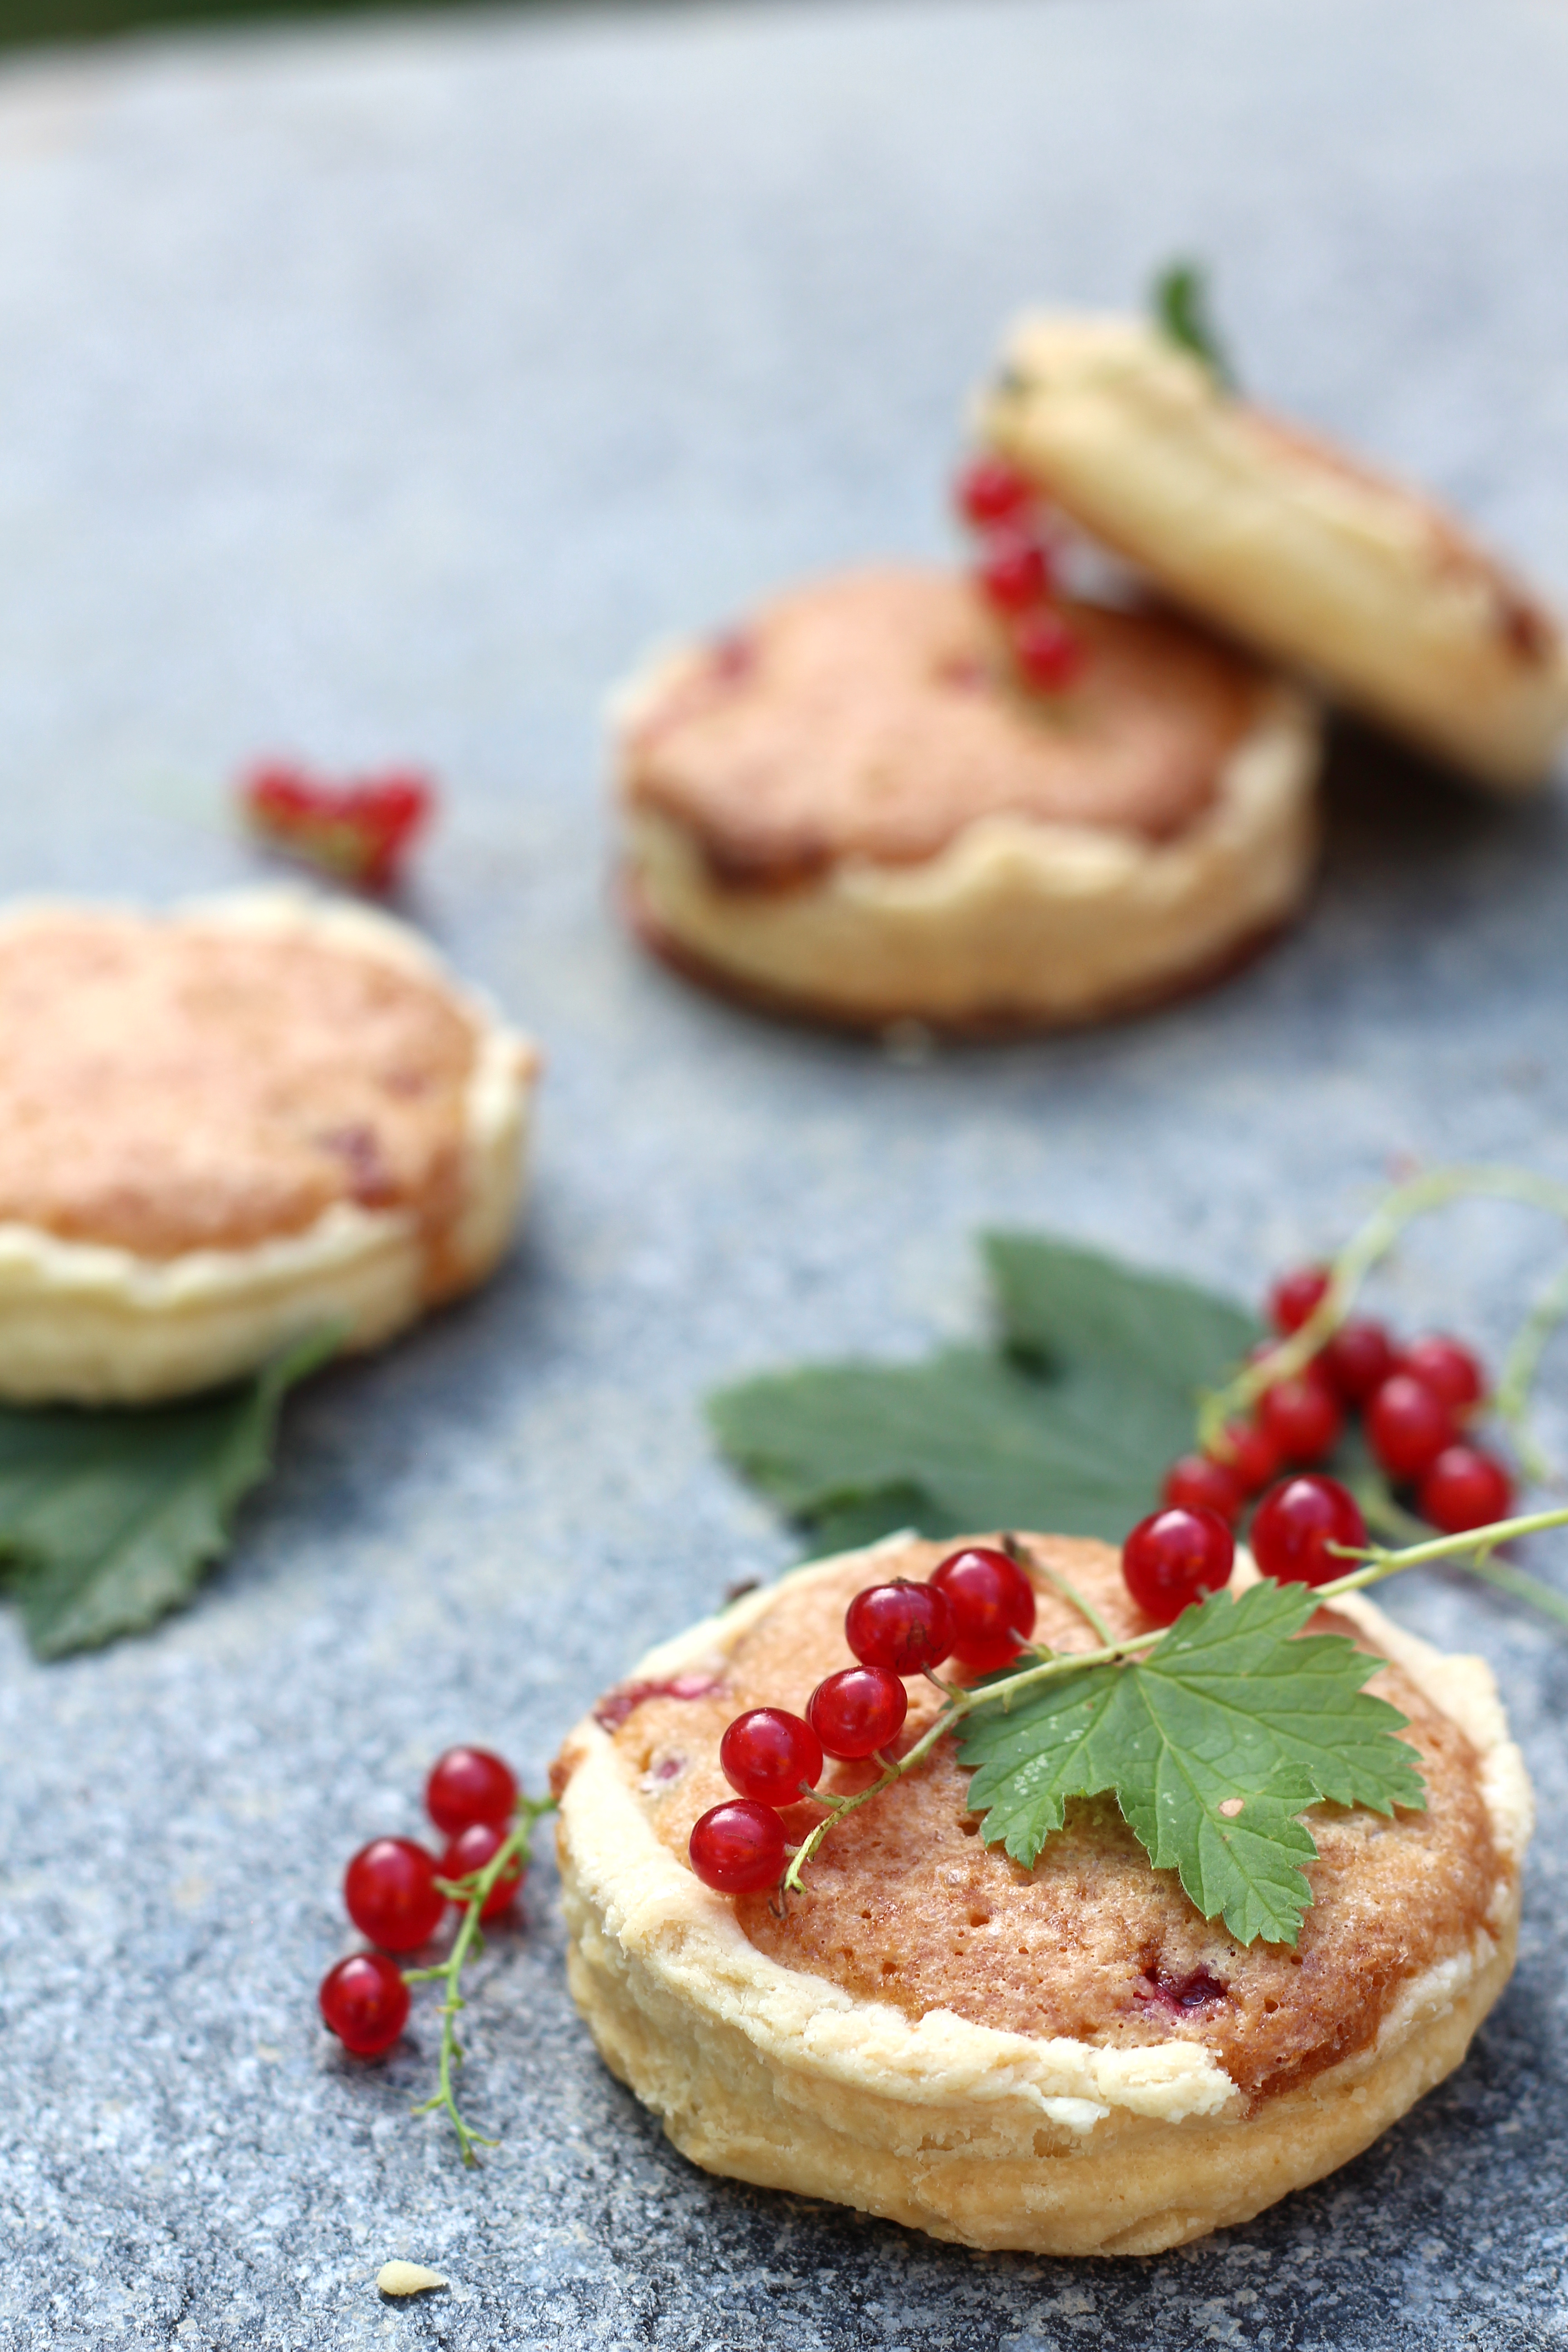 Red currants & almond mini pies